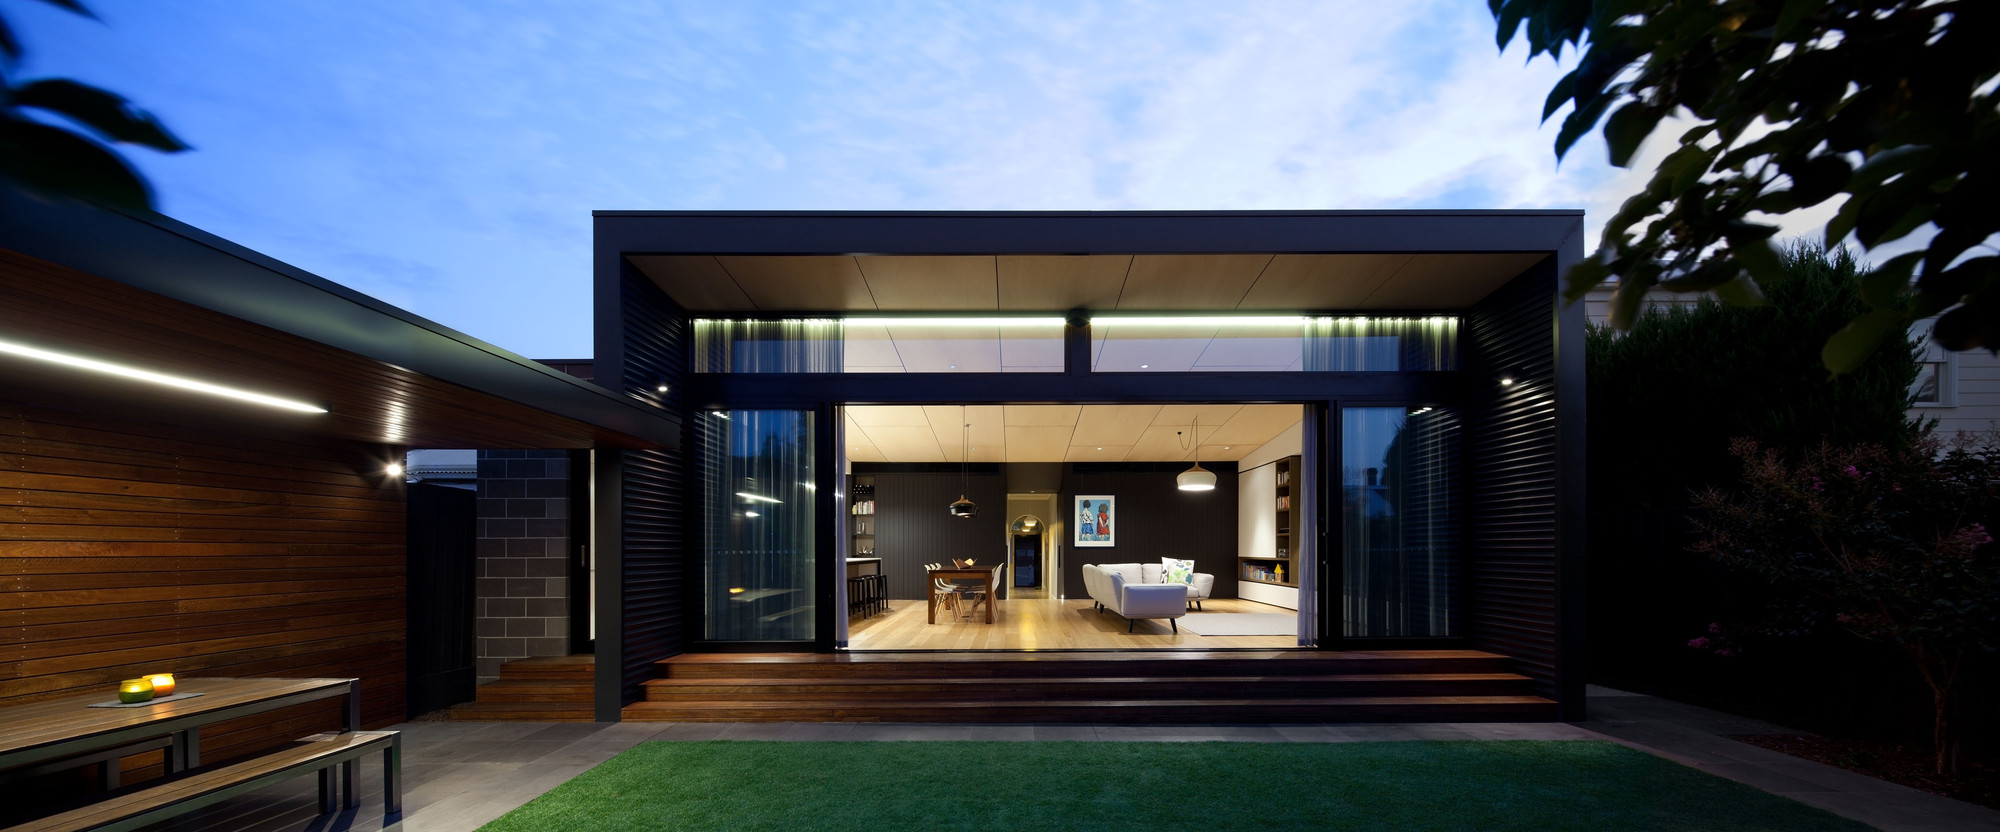 Hawthorn House / Chan Architecture, © Folded Bird Photography – Brendan Finn